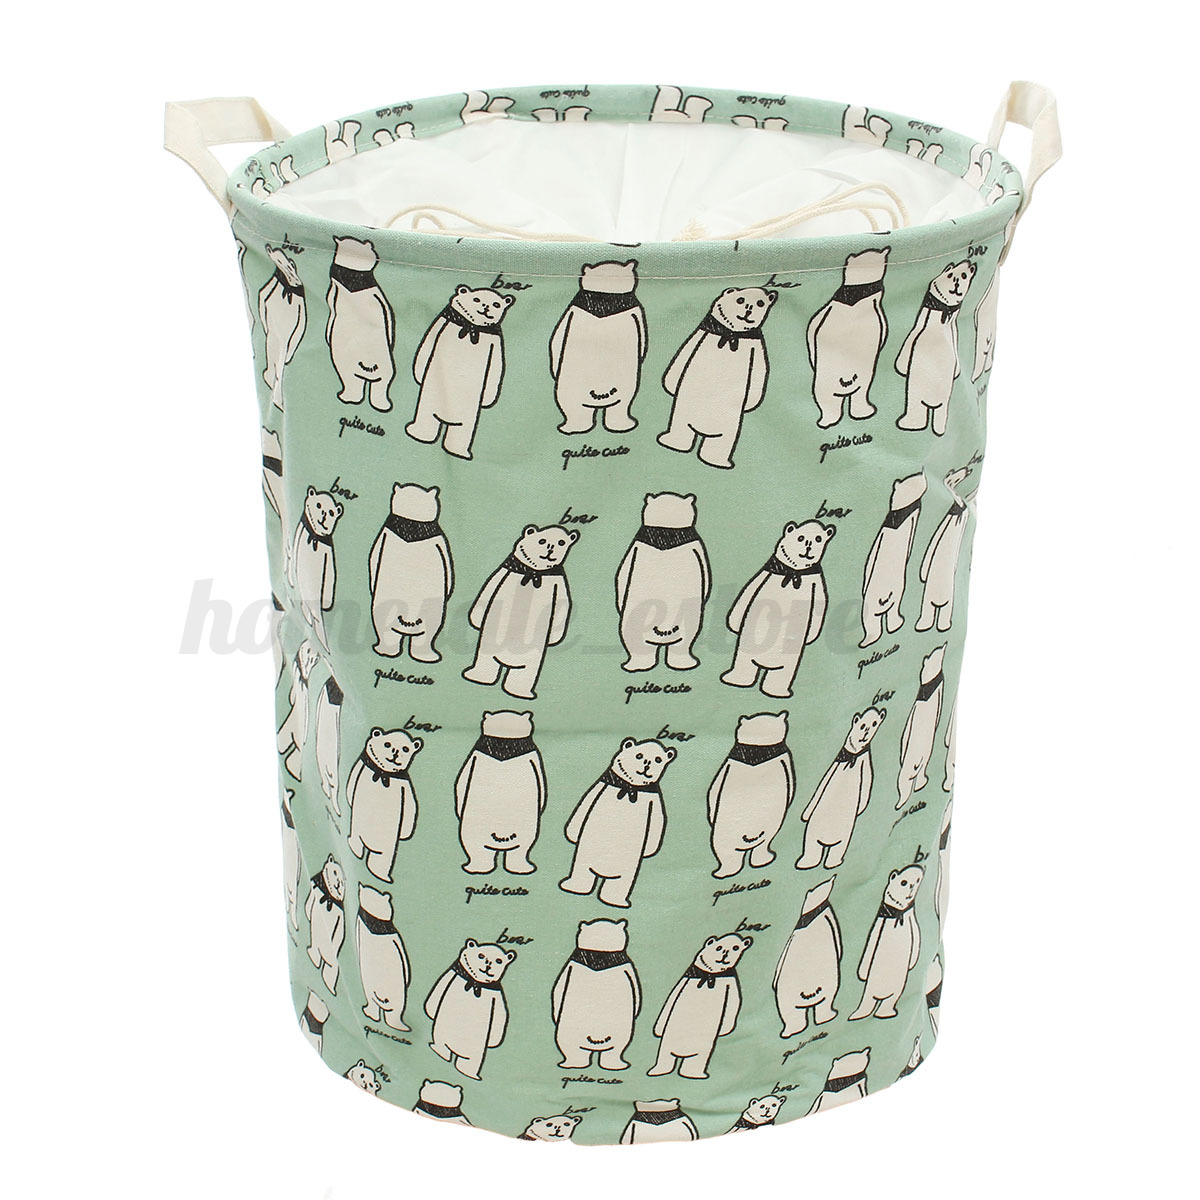 Kids Clothes Hamper 9 Types Folding Kids Toy Canvas Laundry Hamper Basket